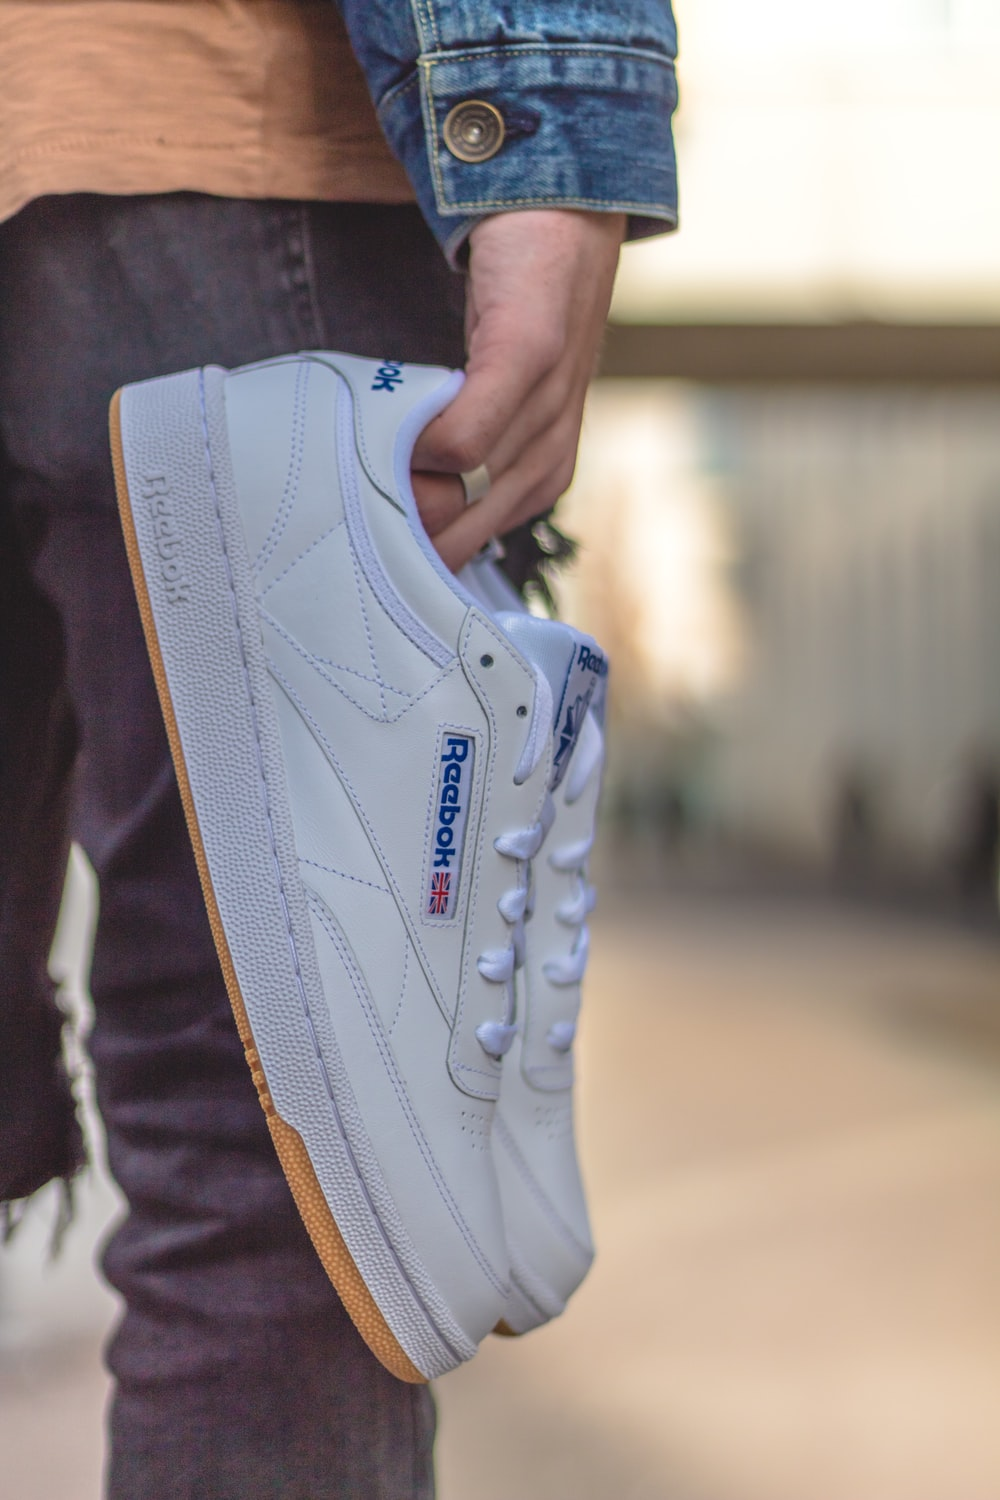 person carrying white Reebok low-top sneakers